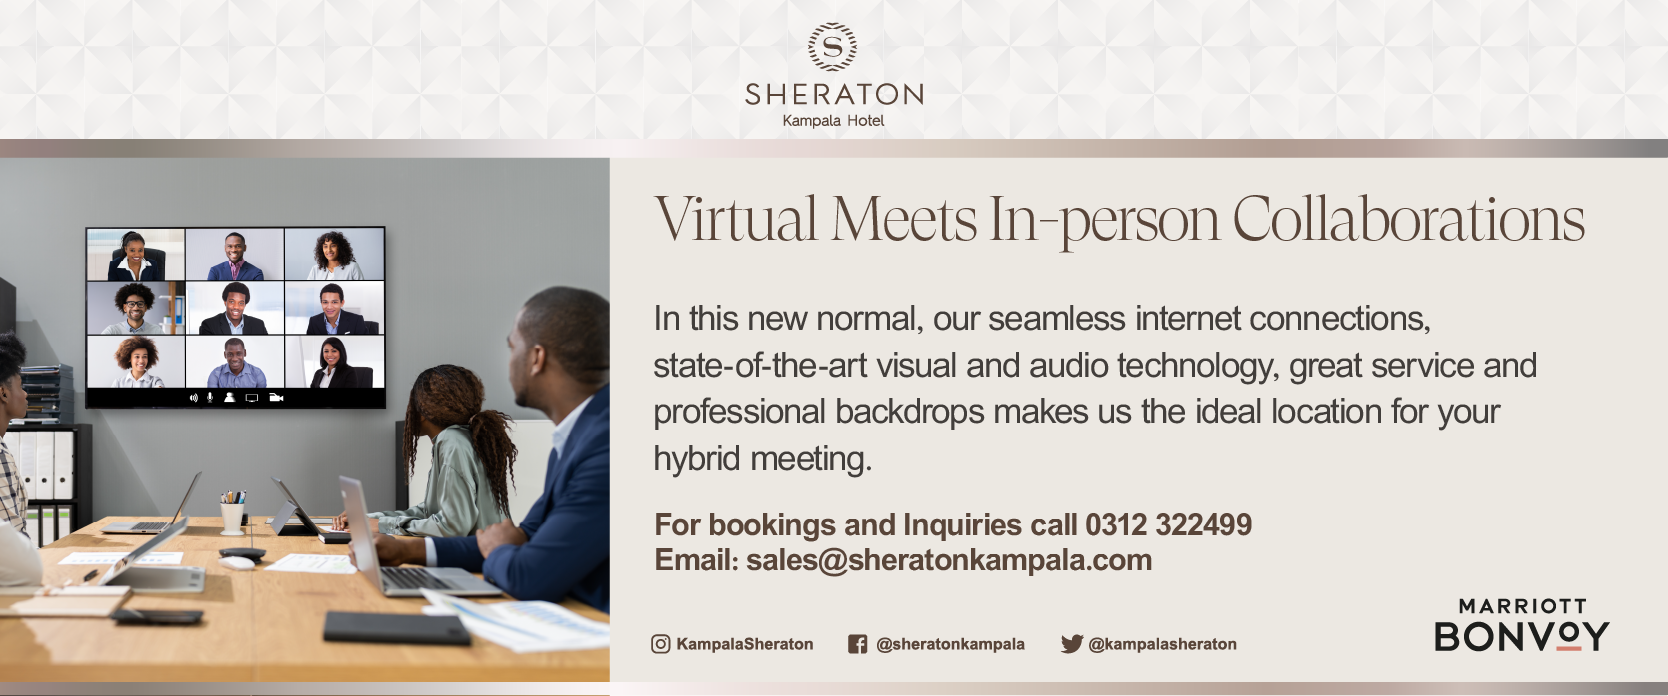 'Virtual' it is and will remain so and the Sheraton Kampala is providing the means for it